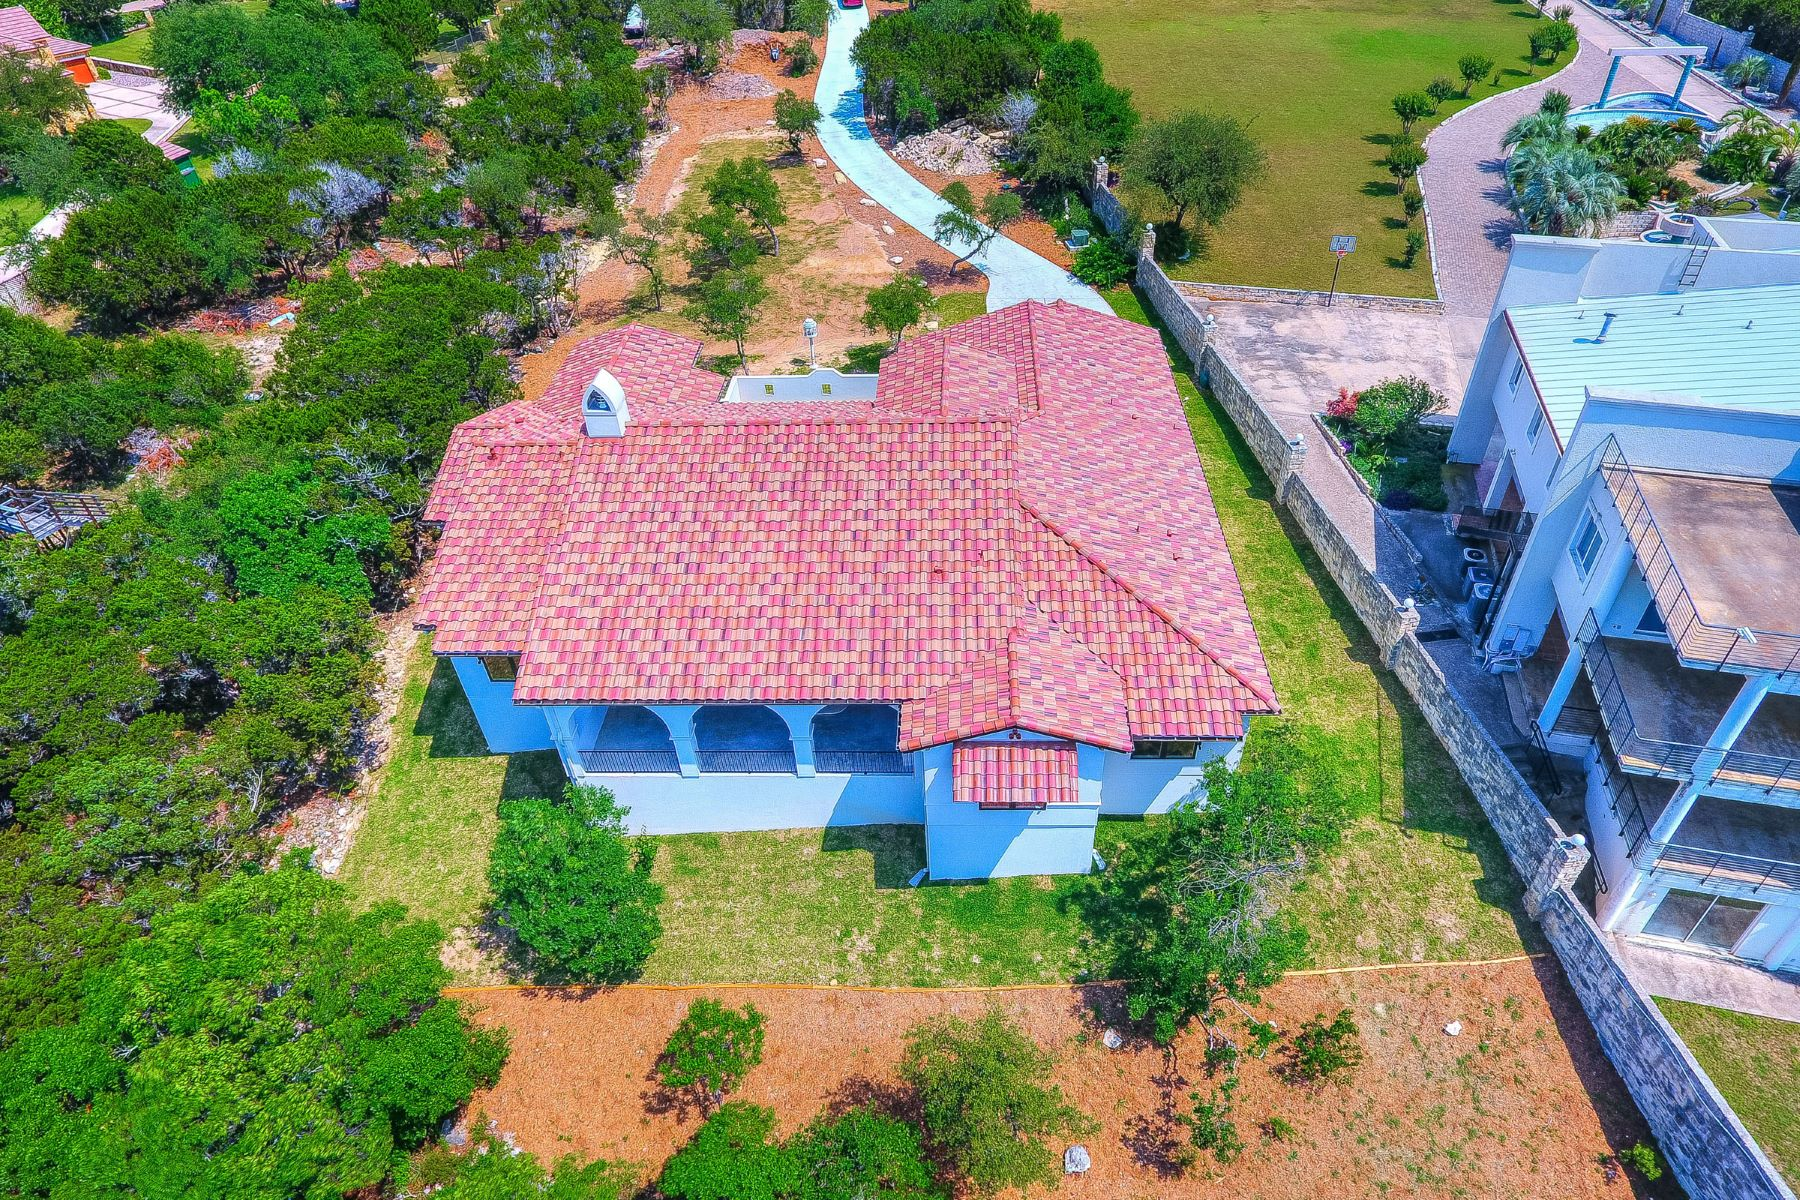 Additional photo for property listing at Single Story Waterfront Home 8408 Lime Creek Rd Leander, Texas 78641 United States